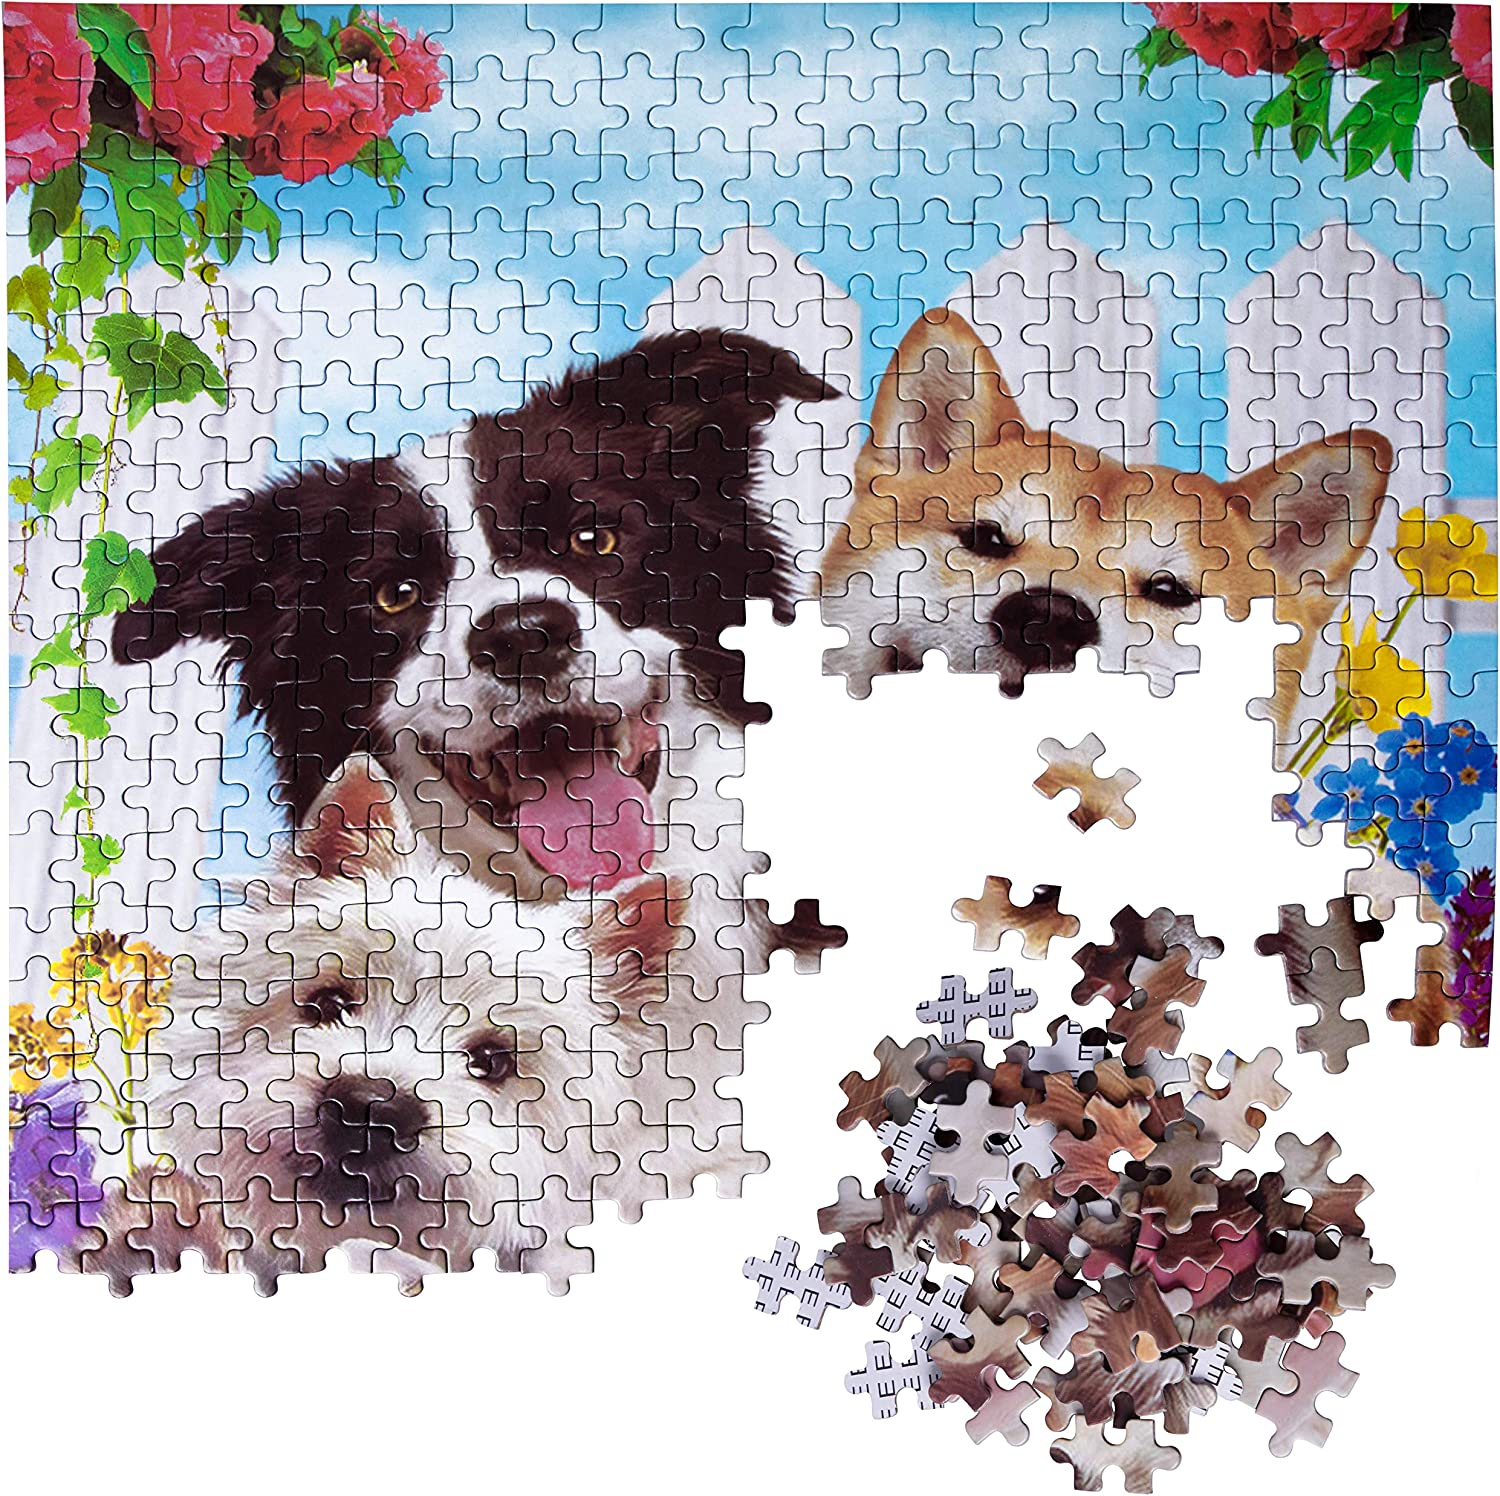 500 PCS Jigsaw Puzzles Educational Intellectual Decompressing Fun Game for Kids Adults Dogs Animals